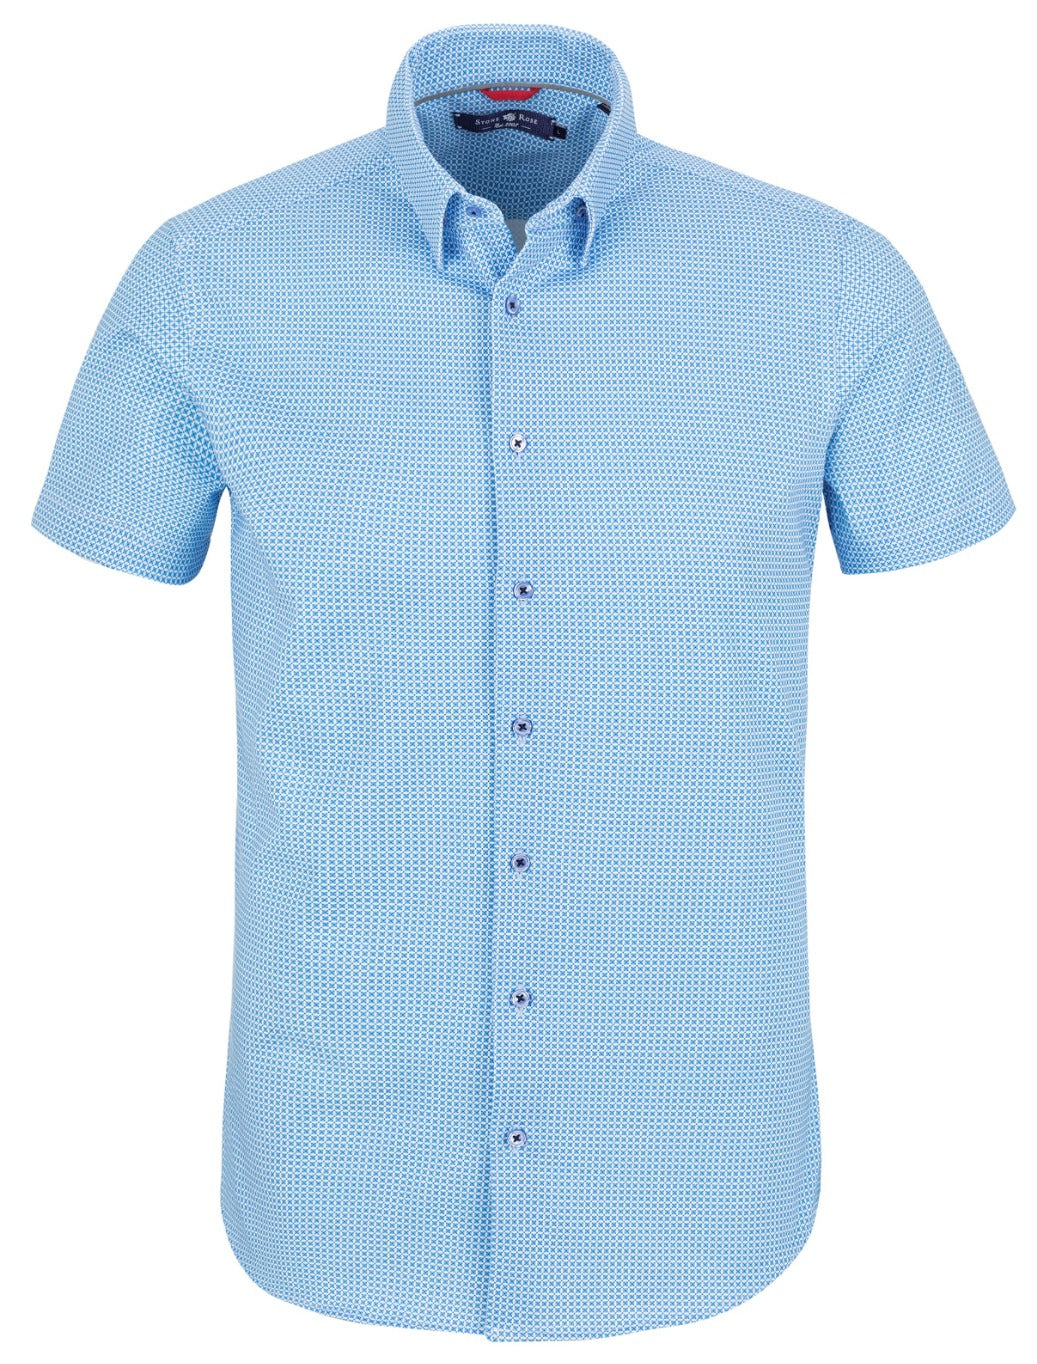 Light Blue Geometric Square Print Short Sleeve Shirt